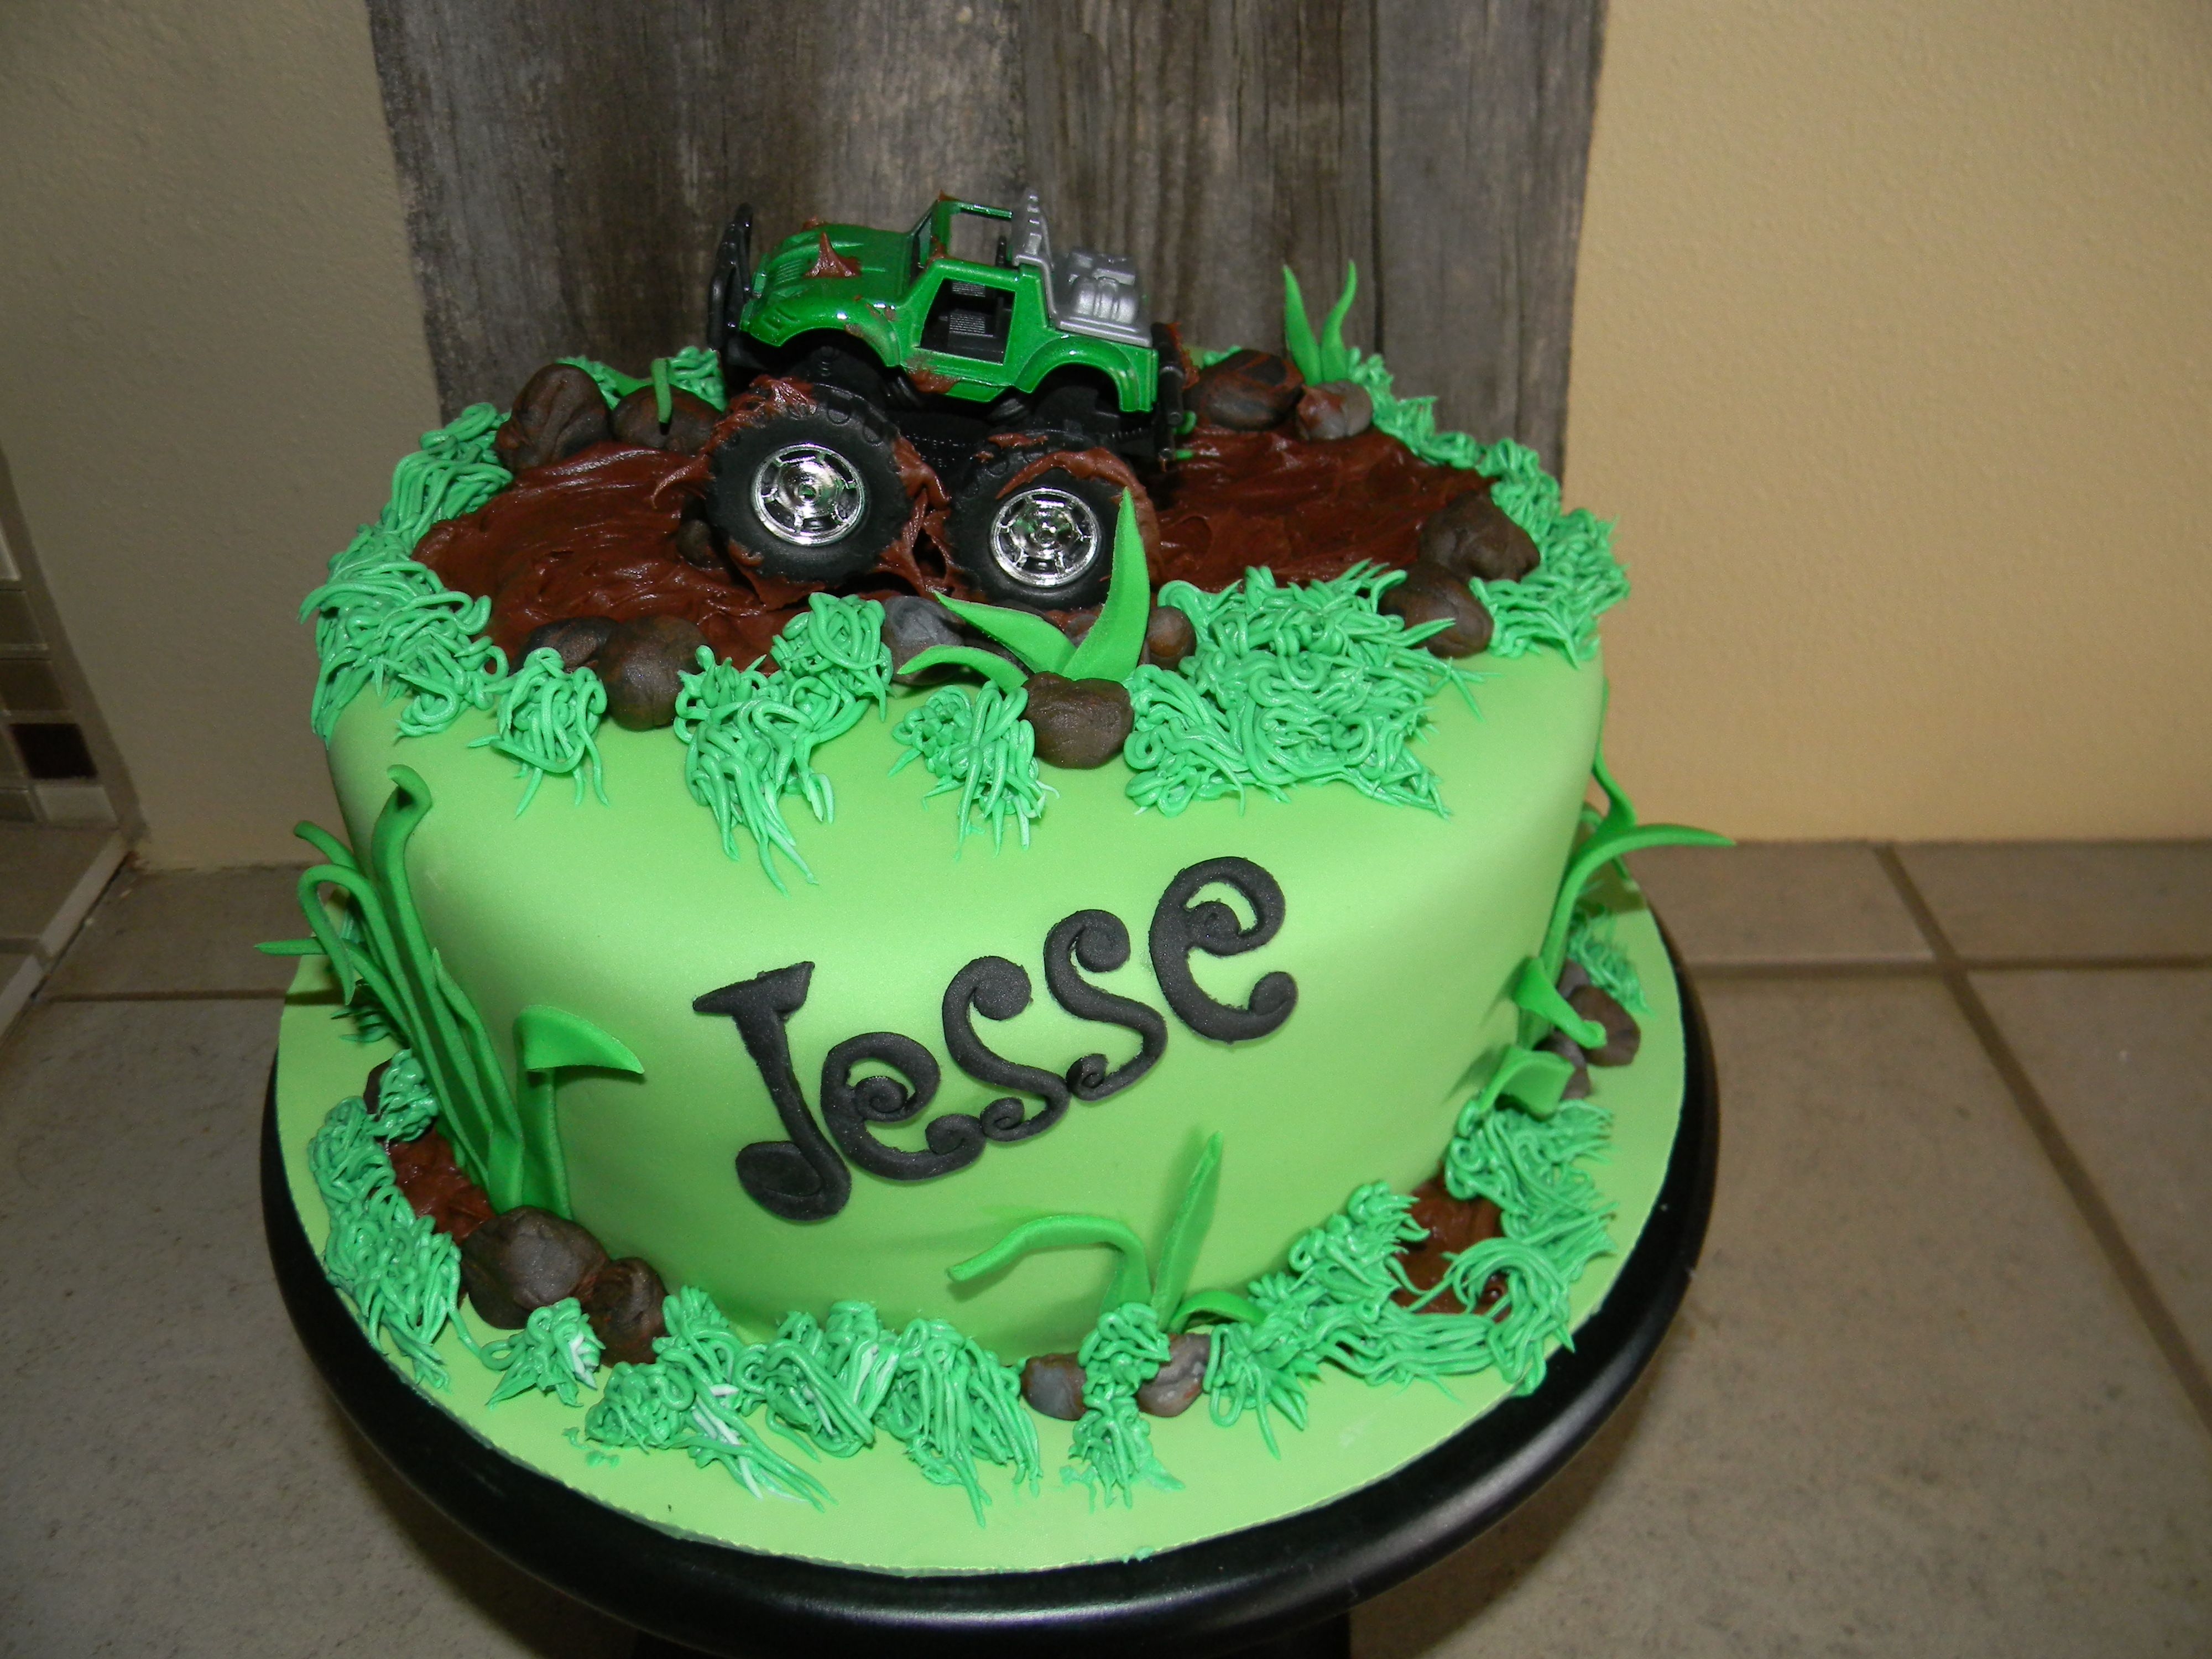 Lol What An Awesome Birthday Cake Mud Bog For The Kids